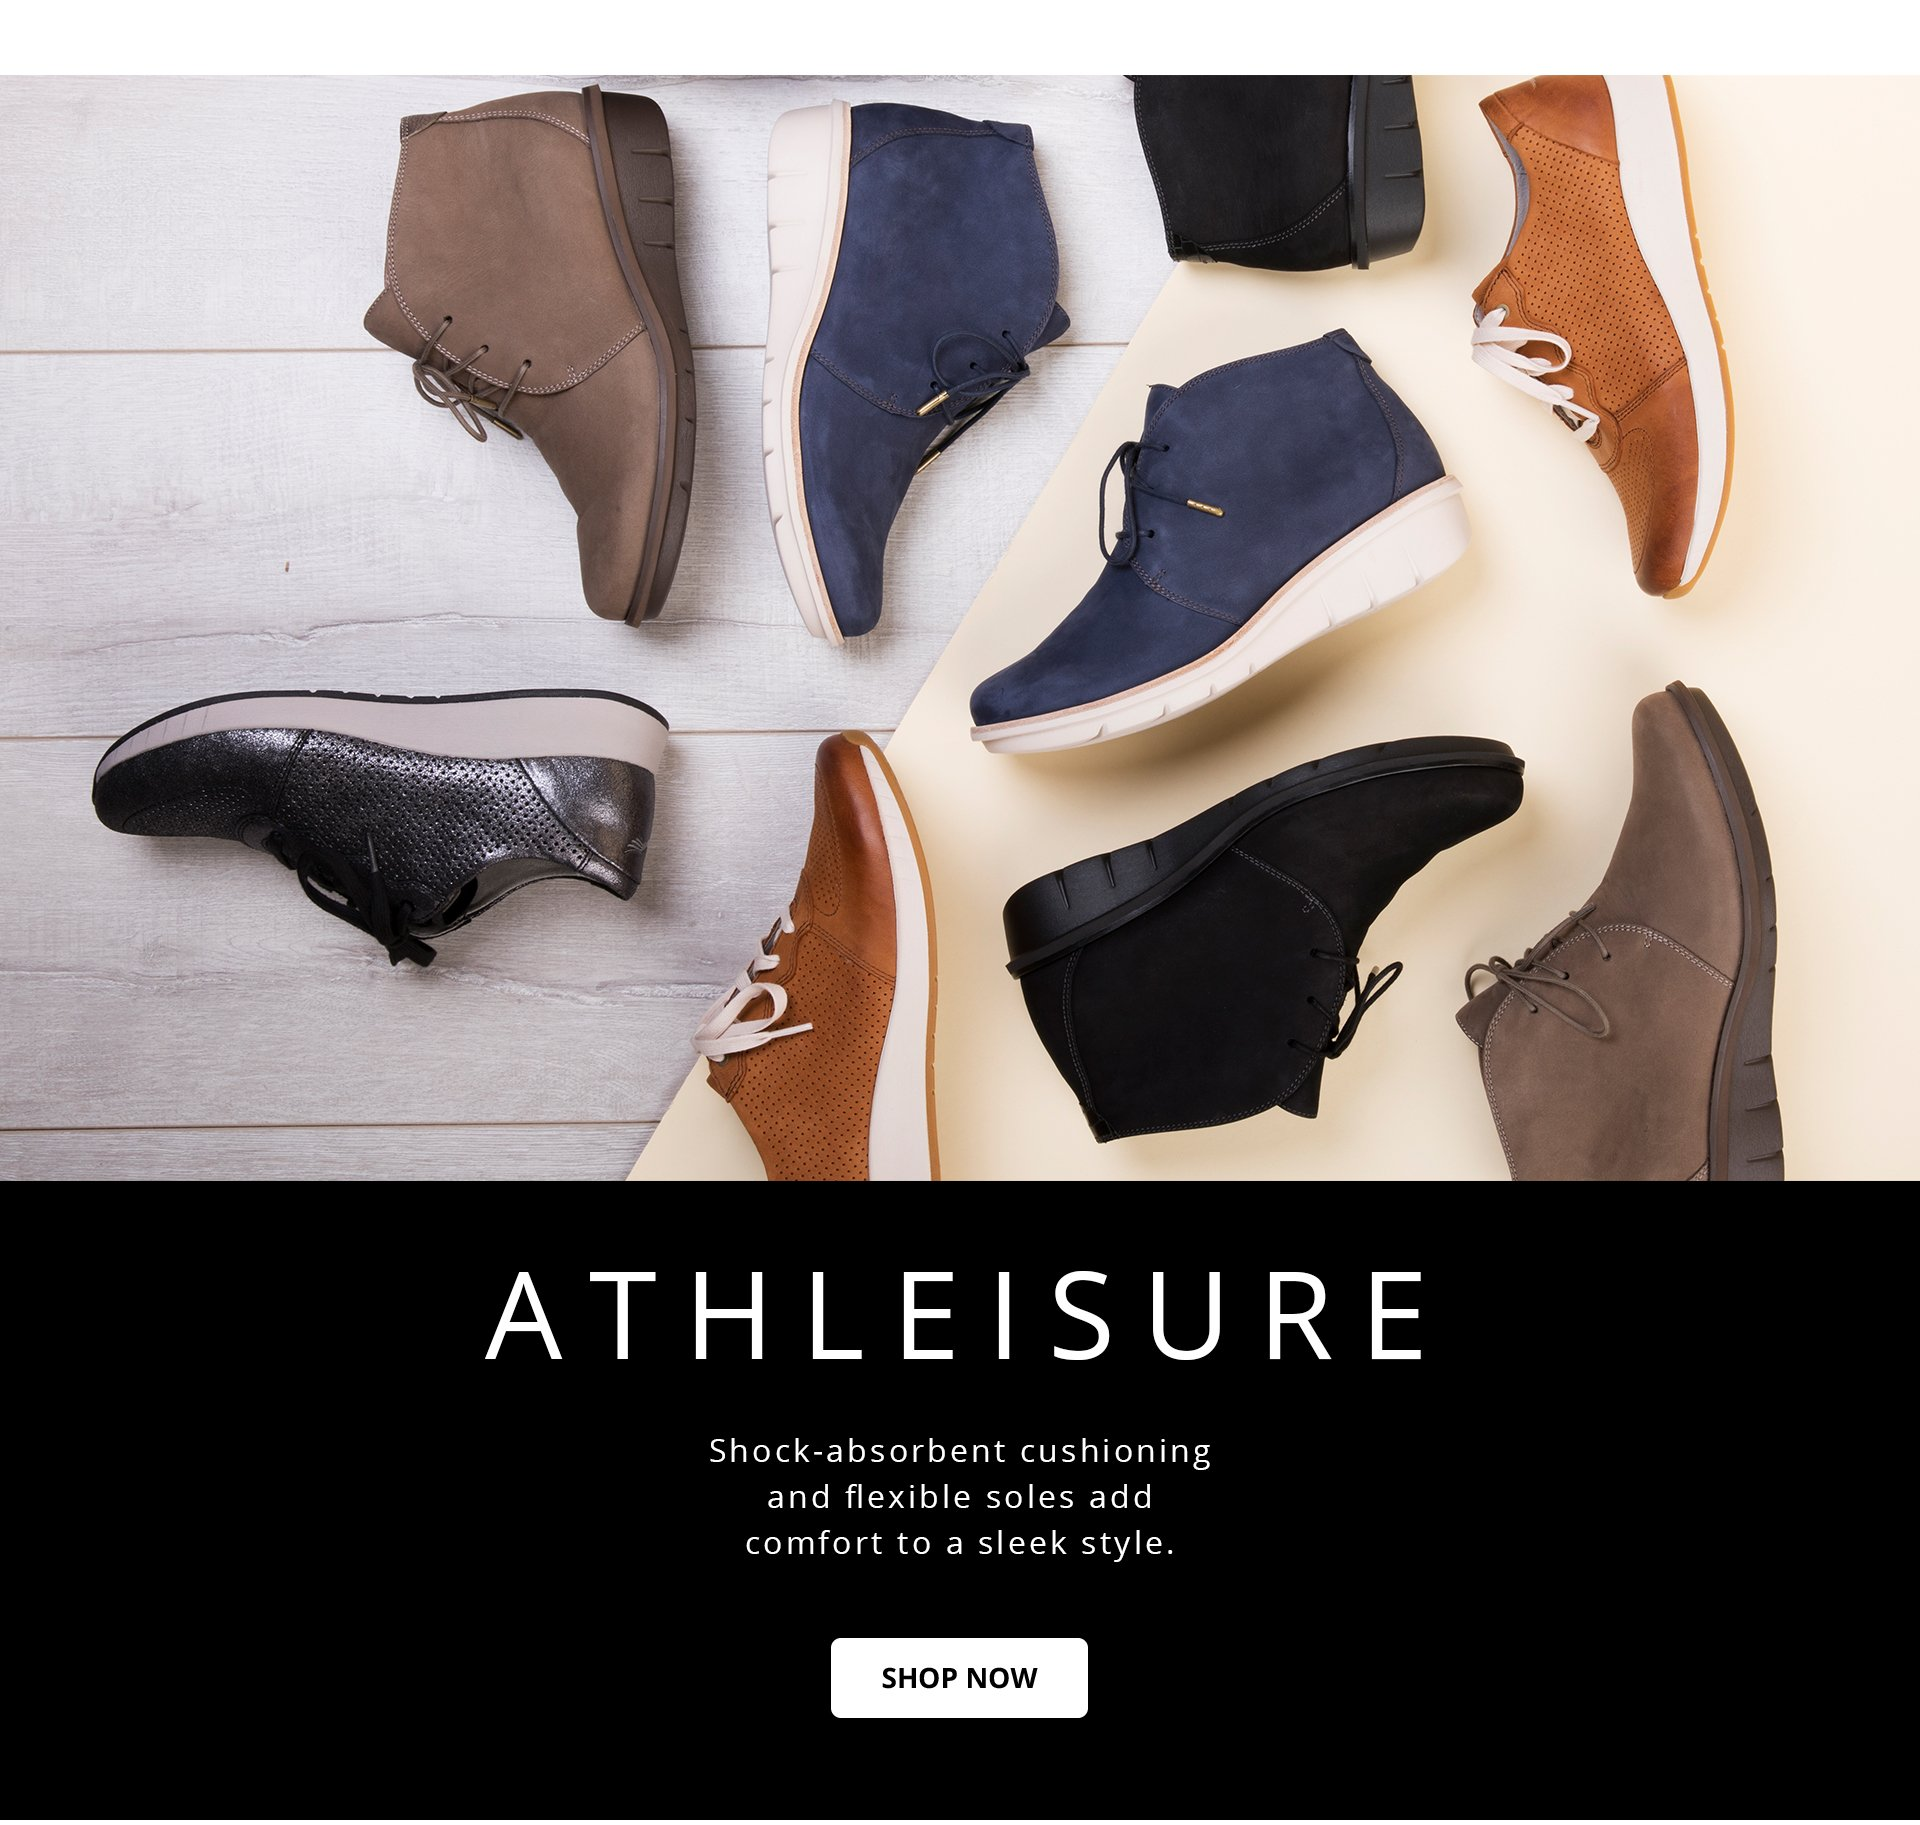 Athleisure: Shock-absorbent cushioning and flexible soles add comfort to a sleek style.